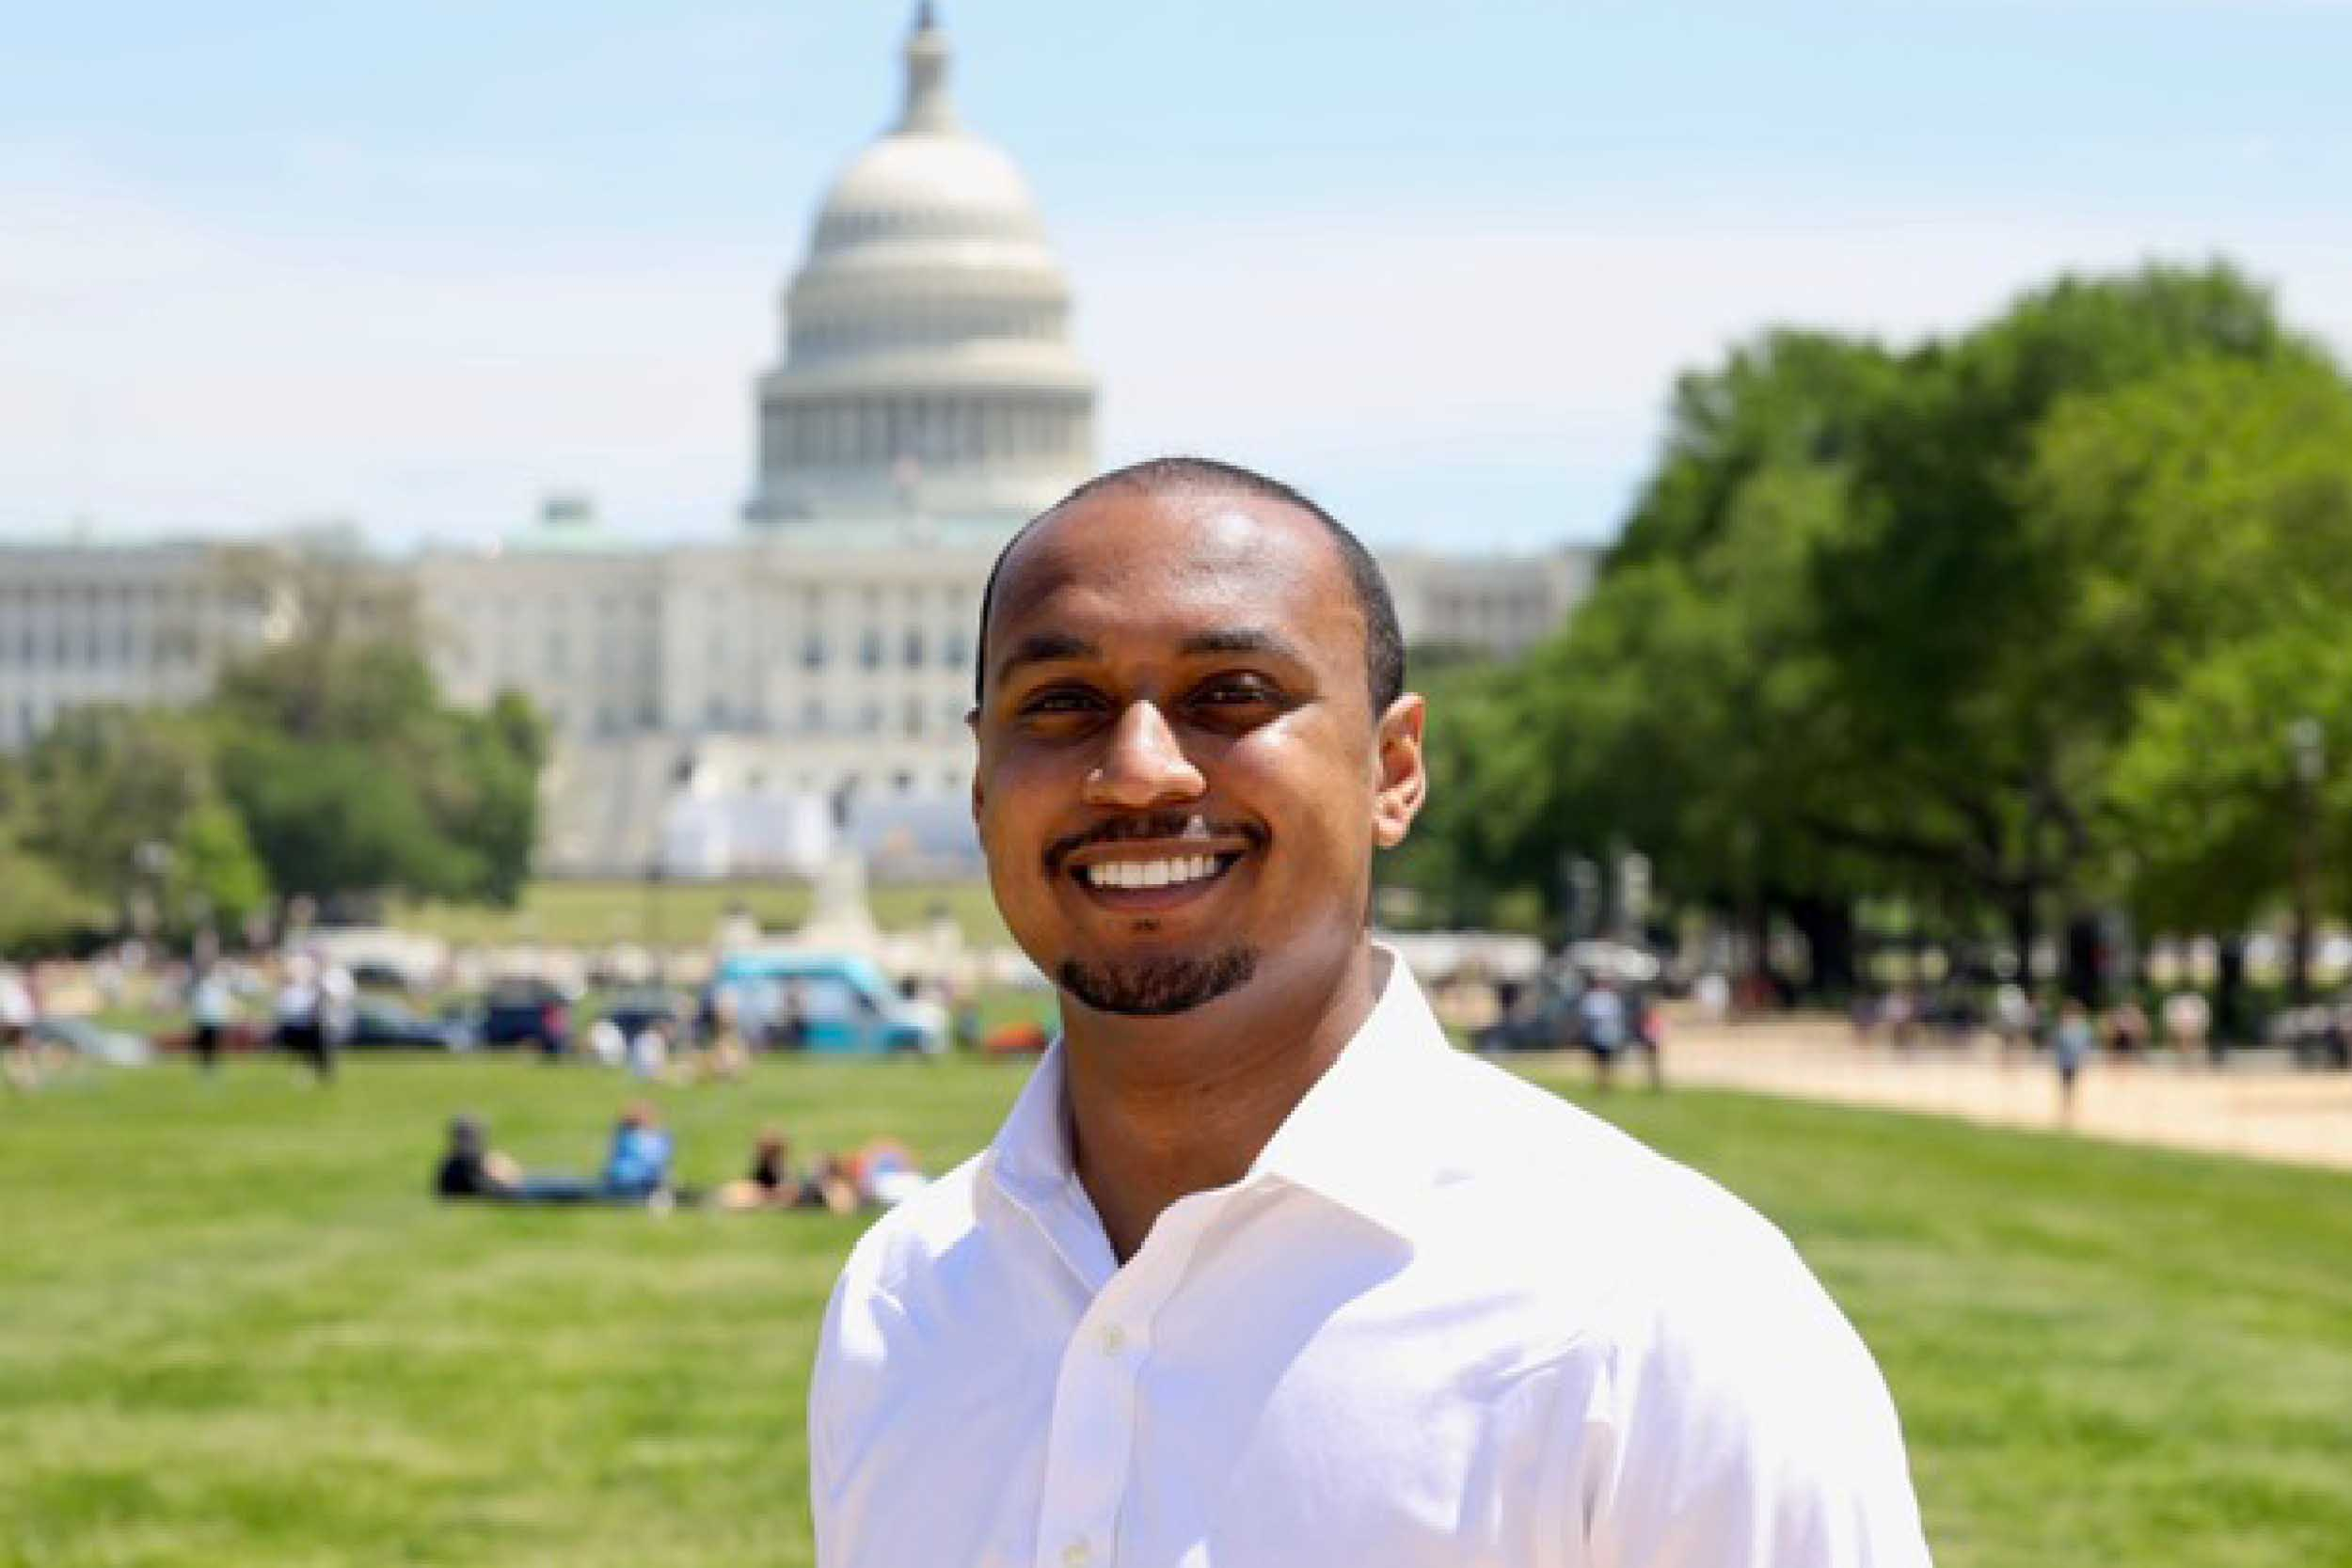 Marquise Riley is a Lecturer of Accounting at Dyson